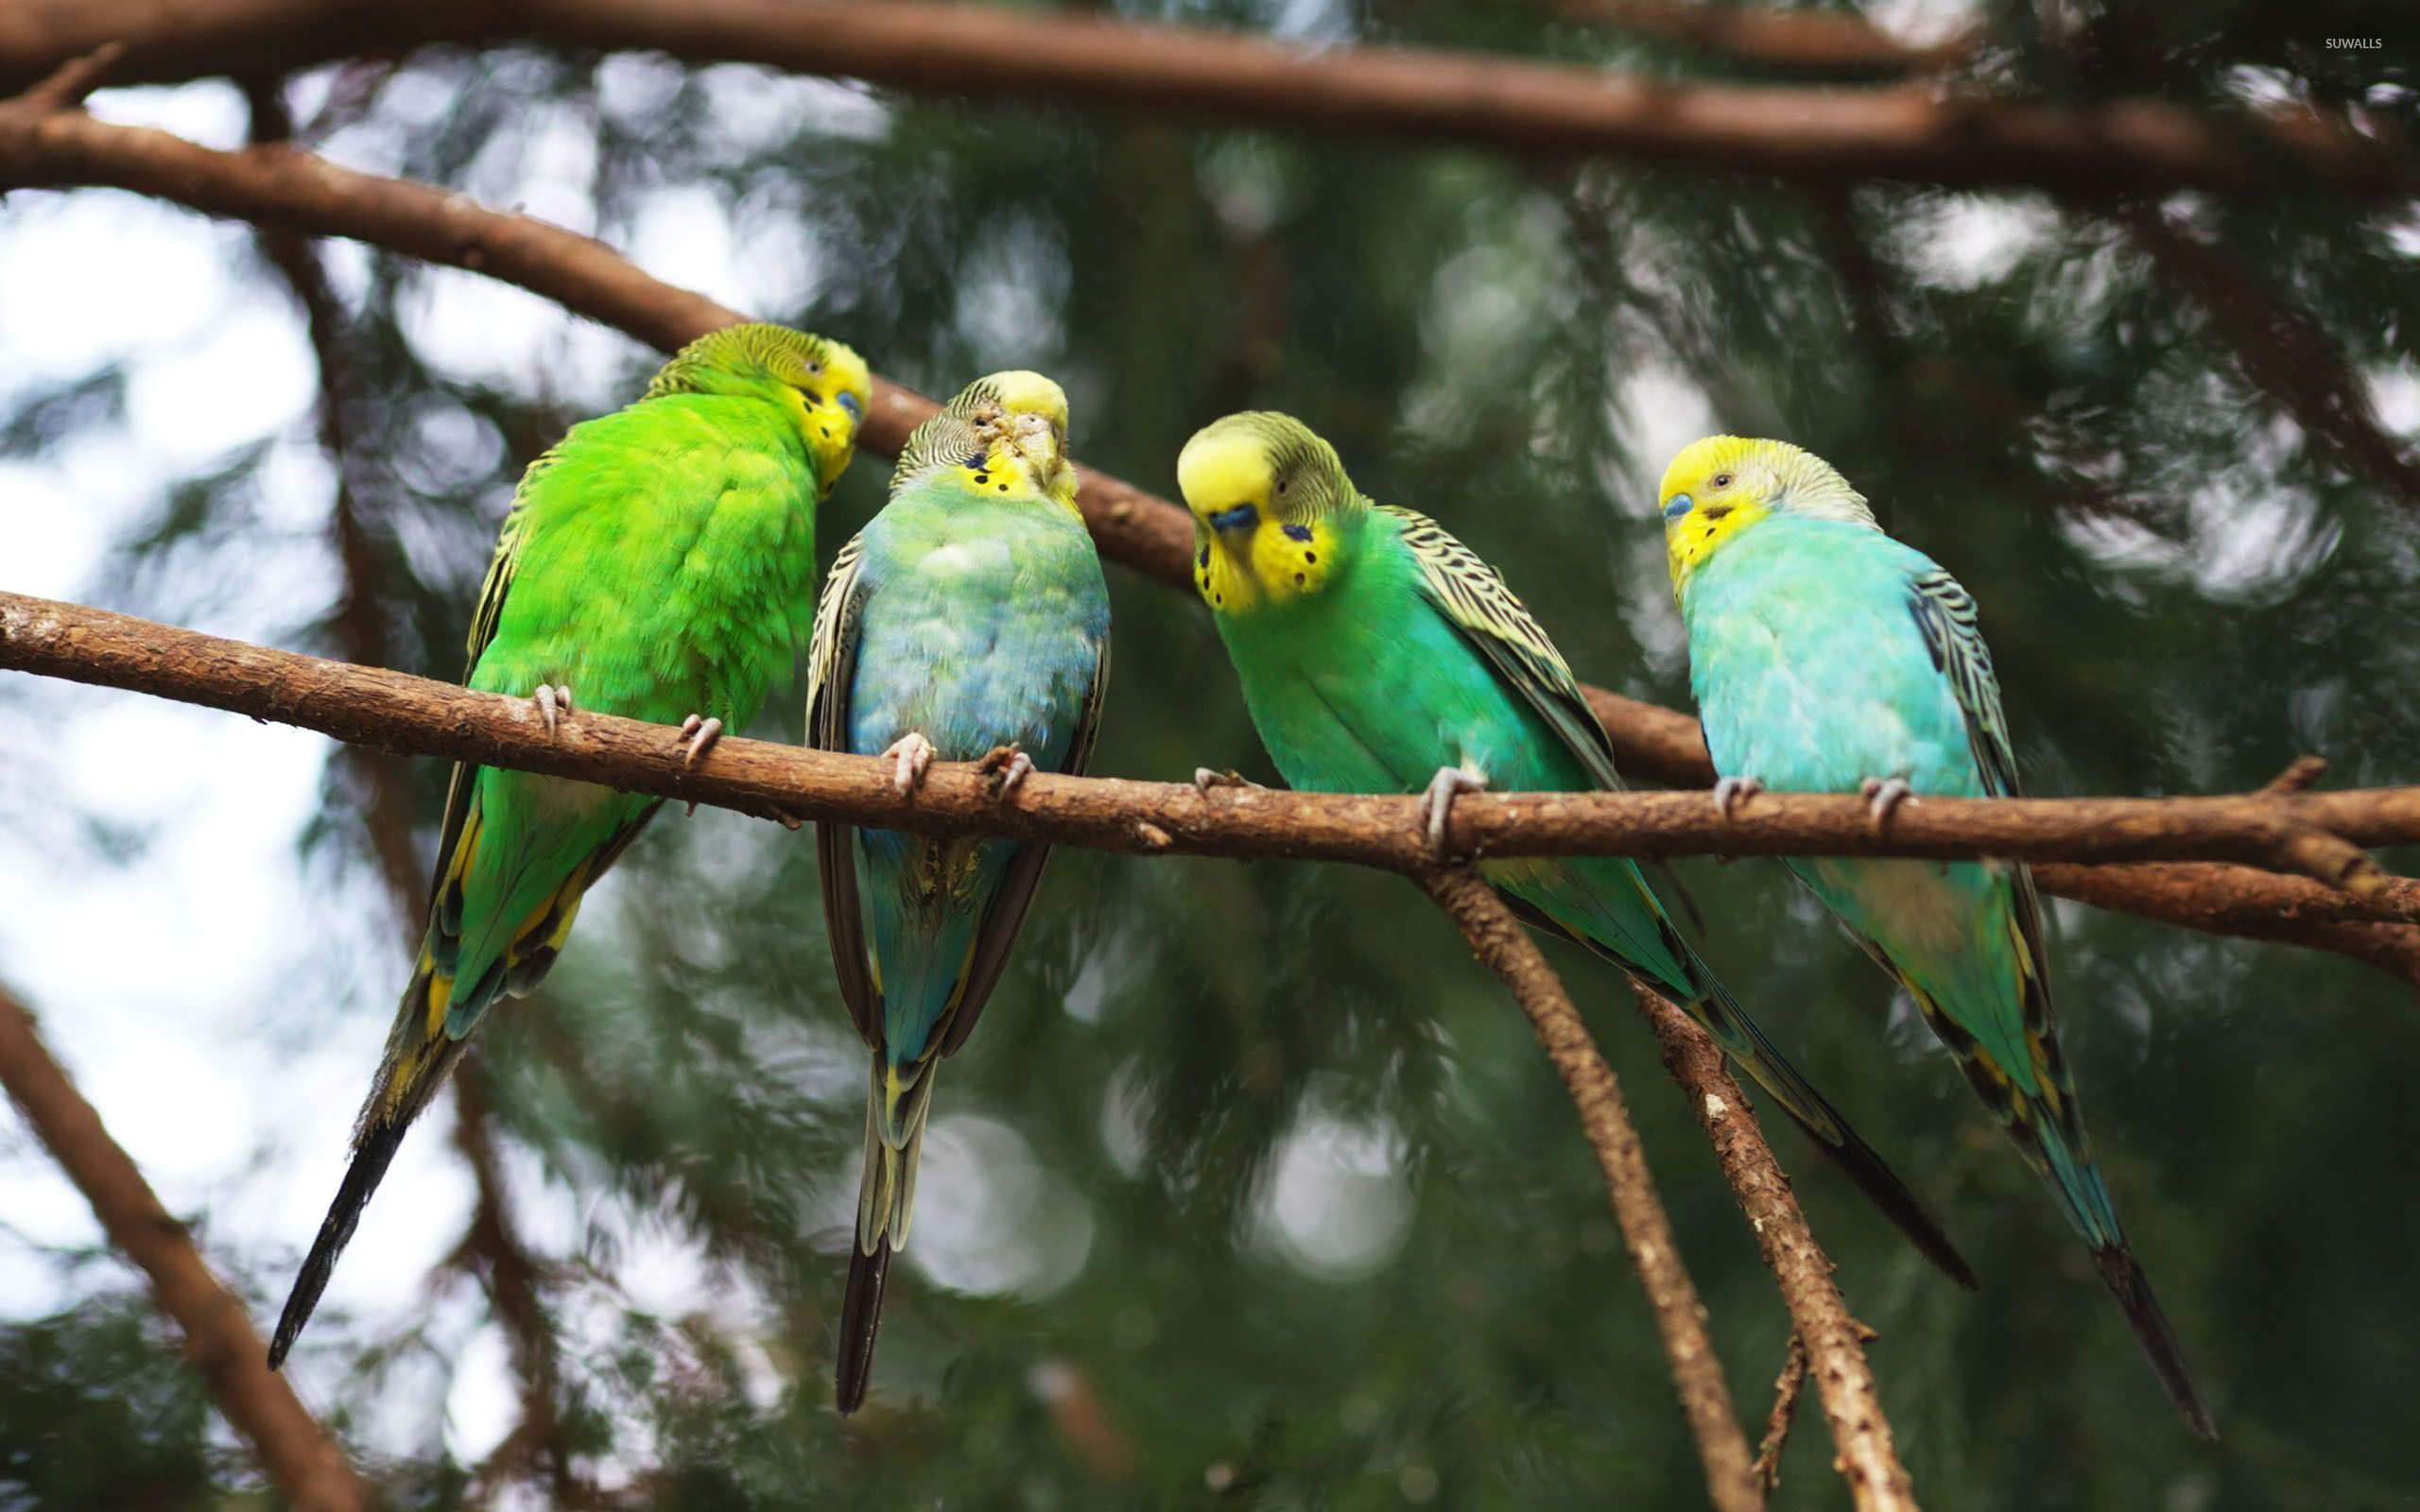 Green Parrots On The Branch 53619 2560×1600 Wallpaper